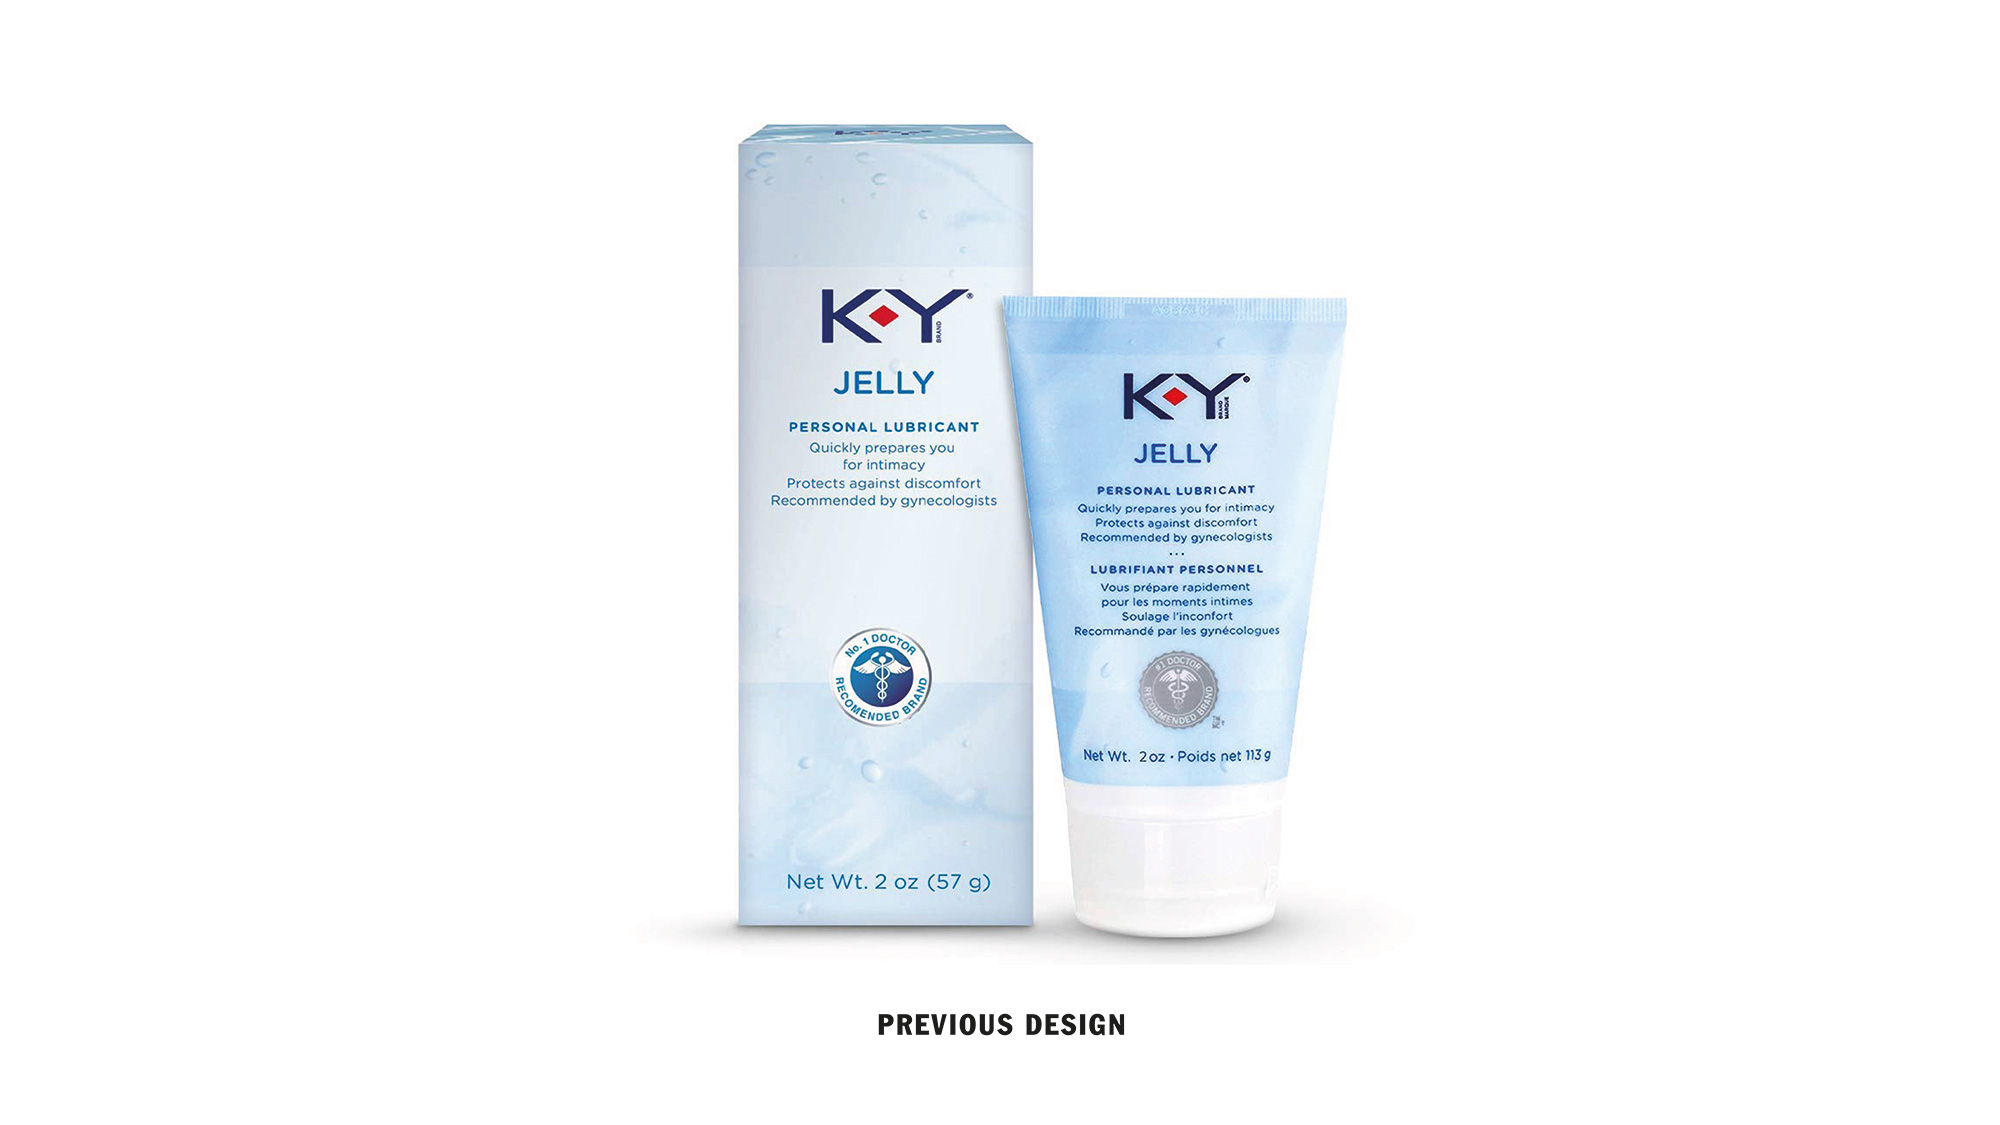 New Logo and Packaging for K-Y by Design Bridge